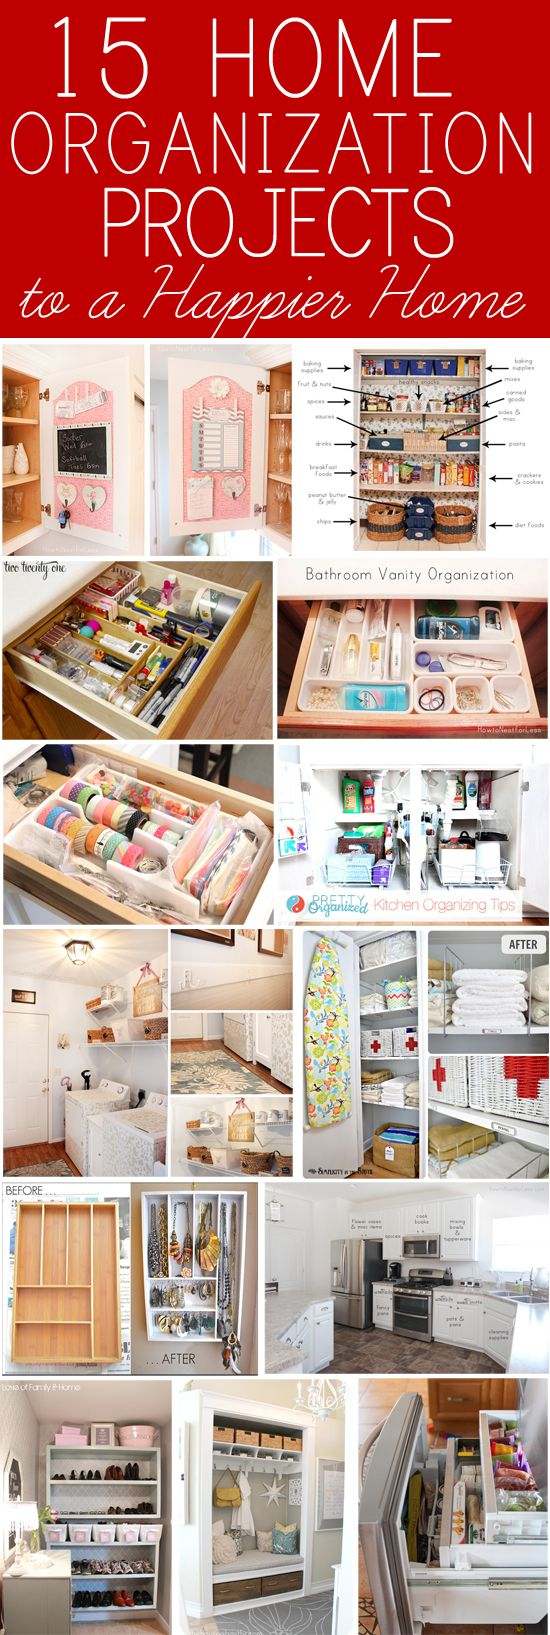 15 home organization projects to make your home happier from @jan issues issues issues issues issues issues Howard to Nest for Less!